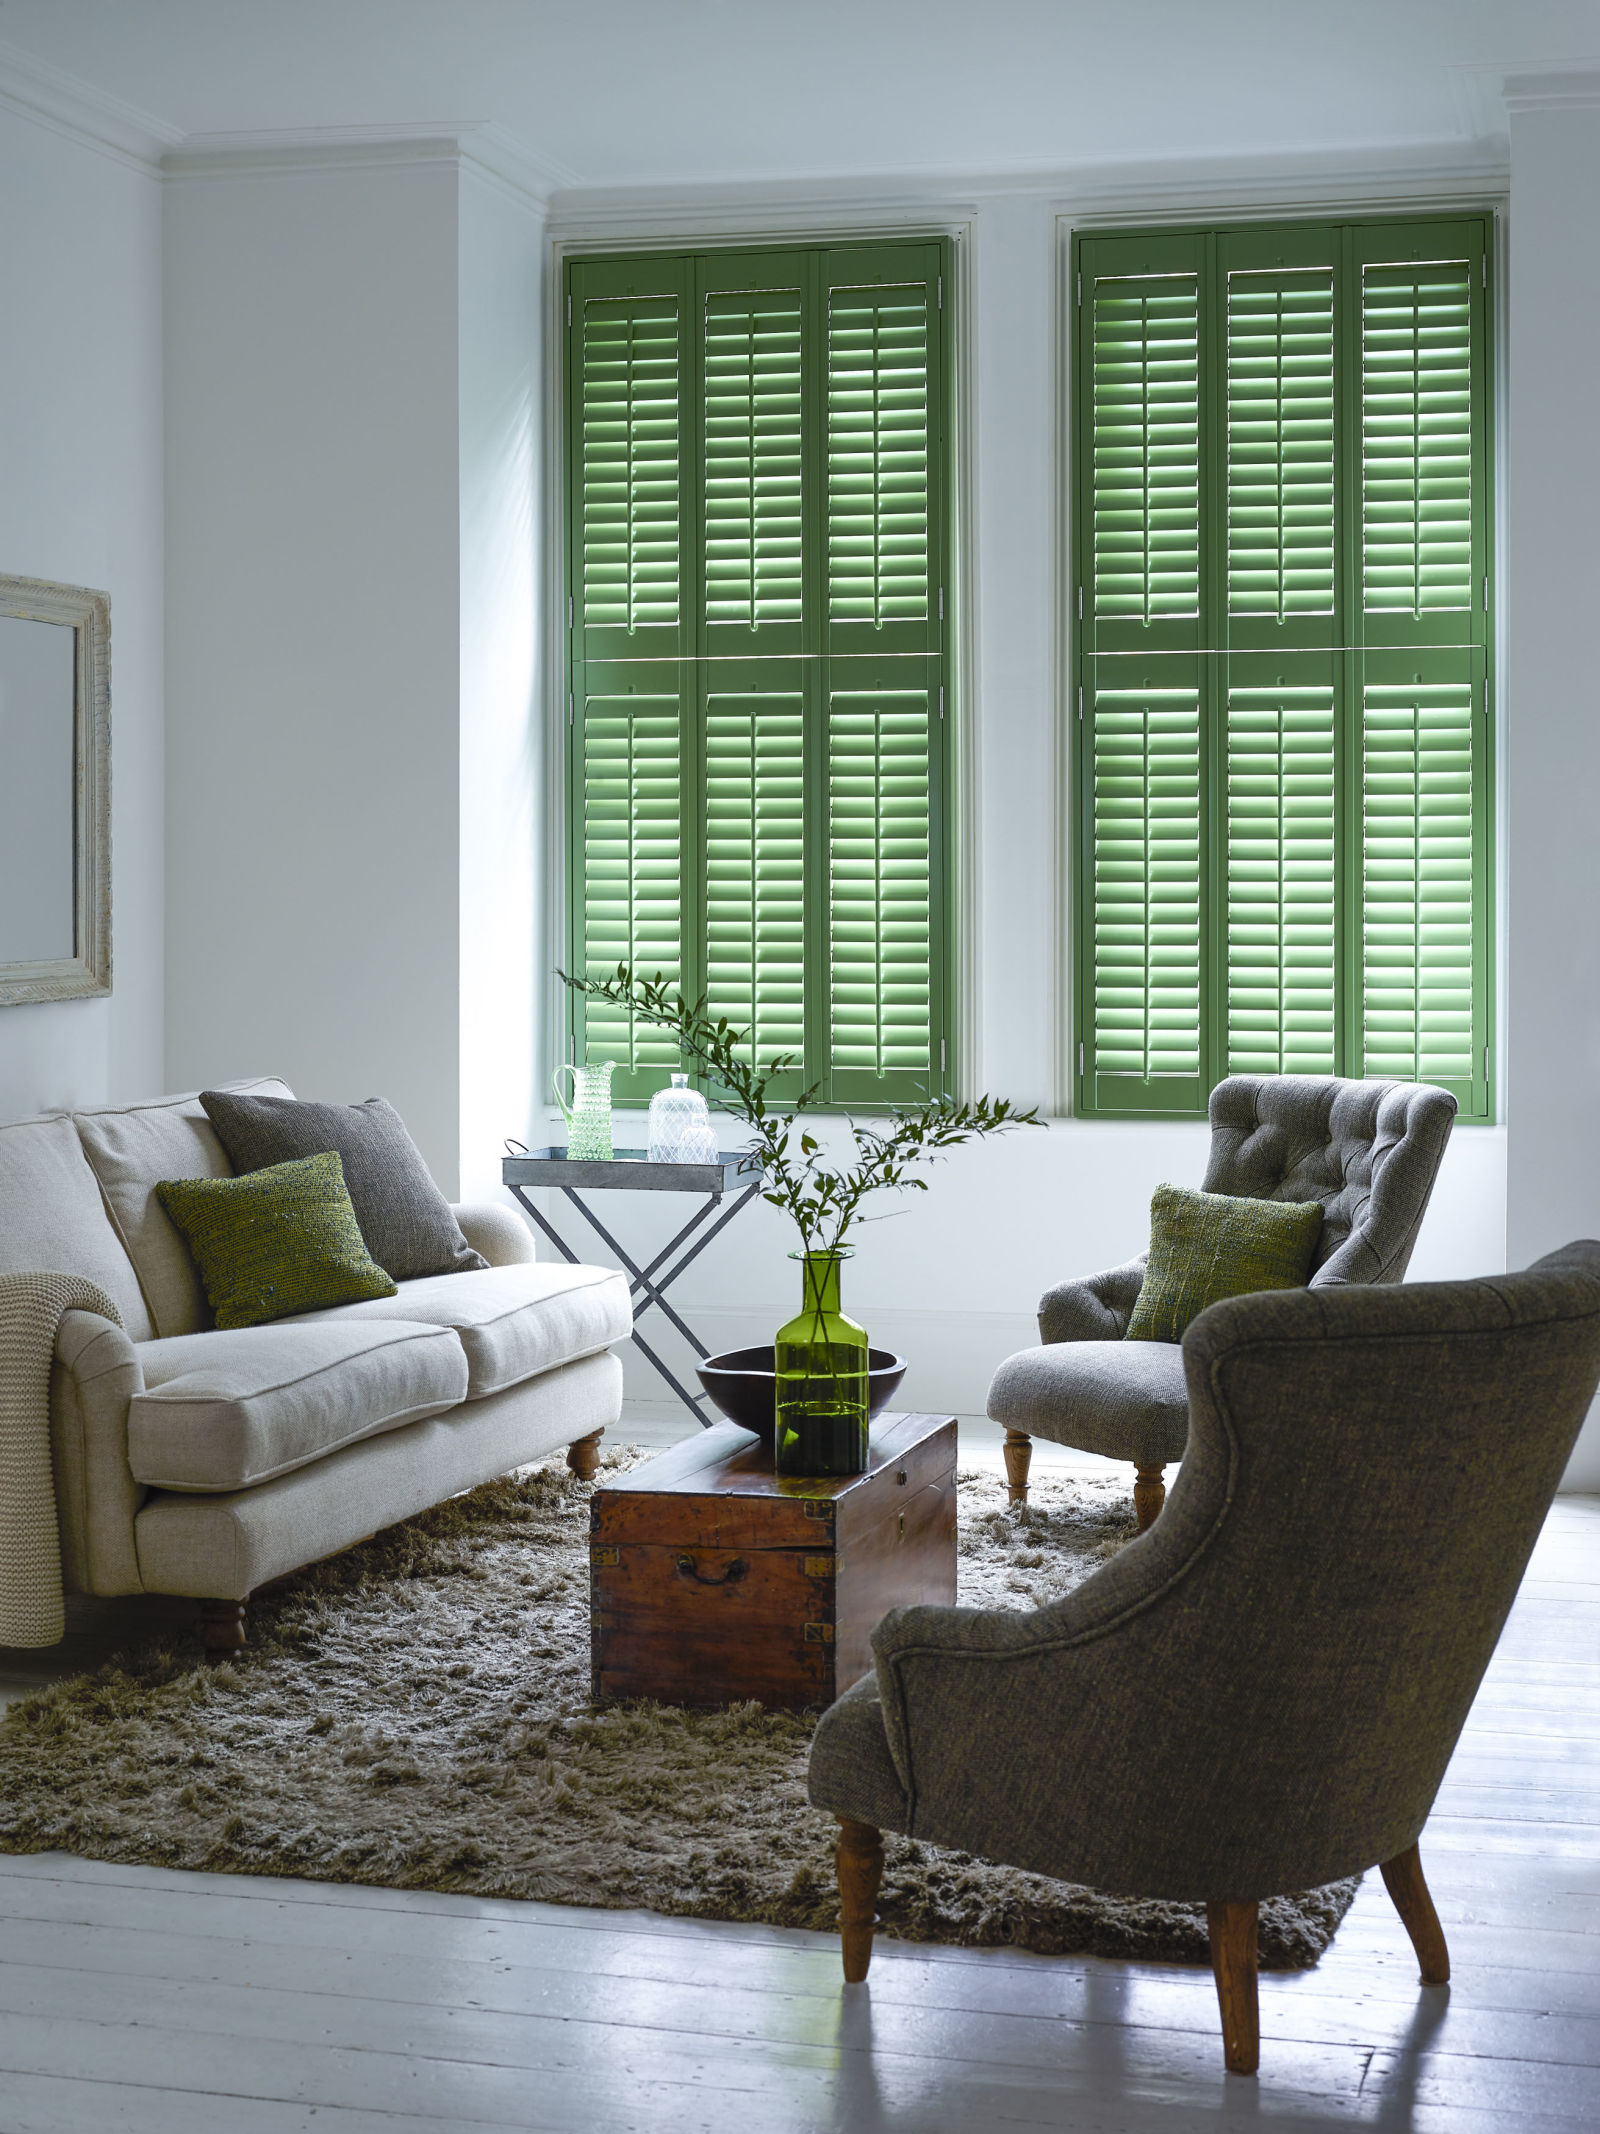 In november we added plantation shutters and i furnished with a sofa - In November We Added Plantation Shutters And I Furnished With A Sofa 0